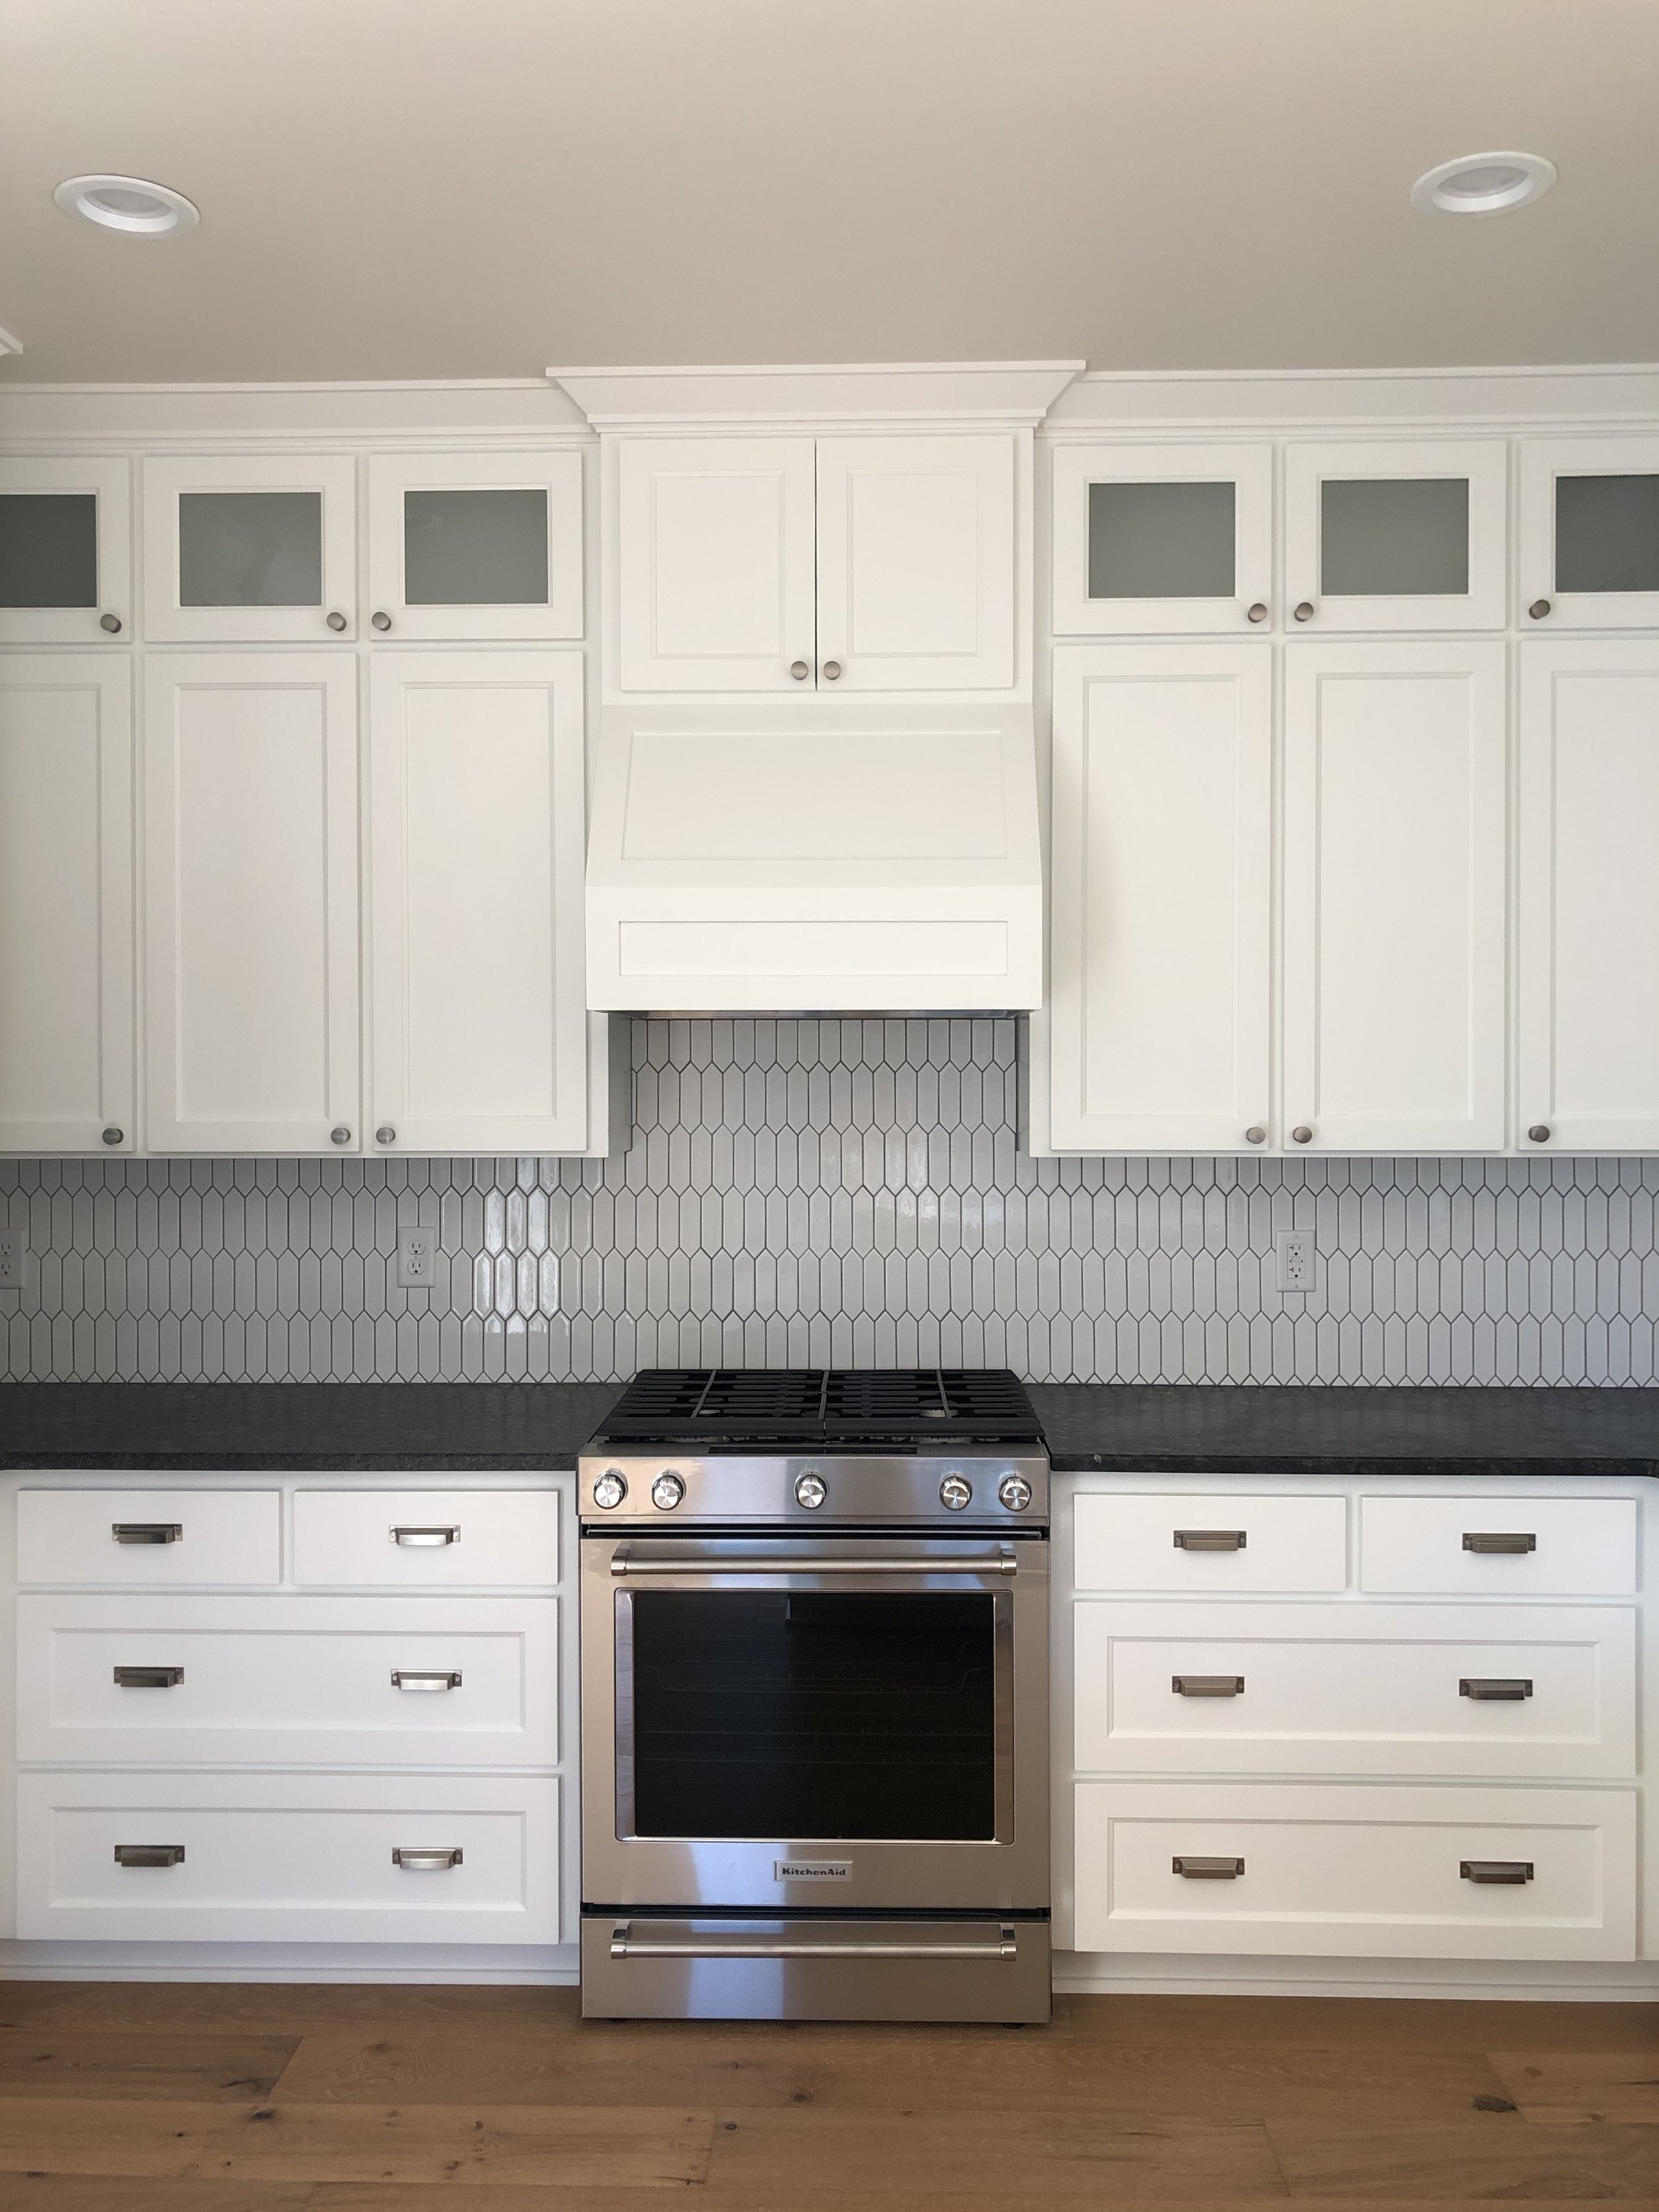 The kitchen cabinets extend all the way to the ceiling with additional storage.